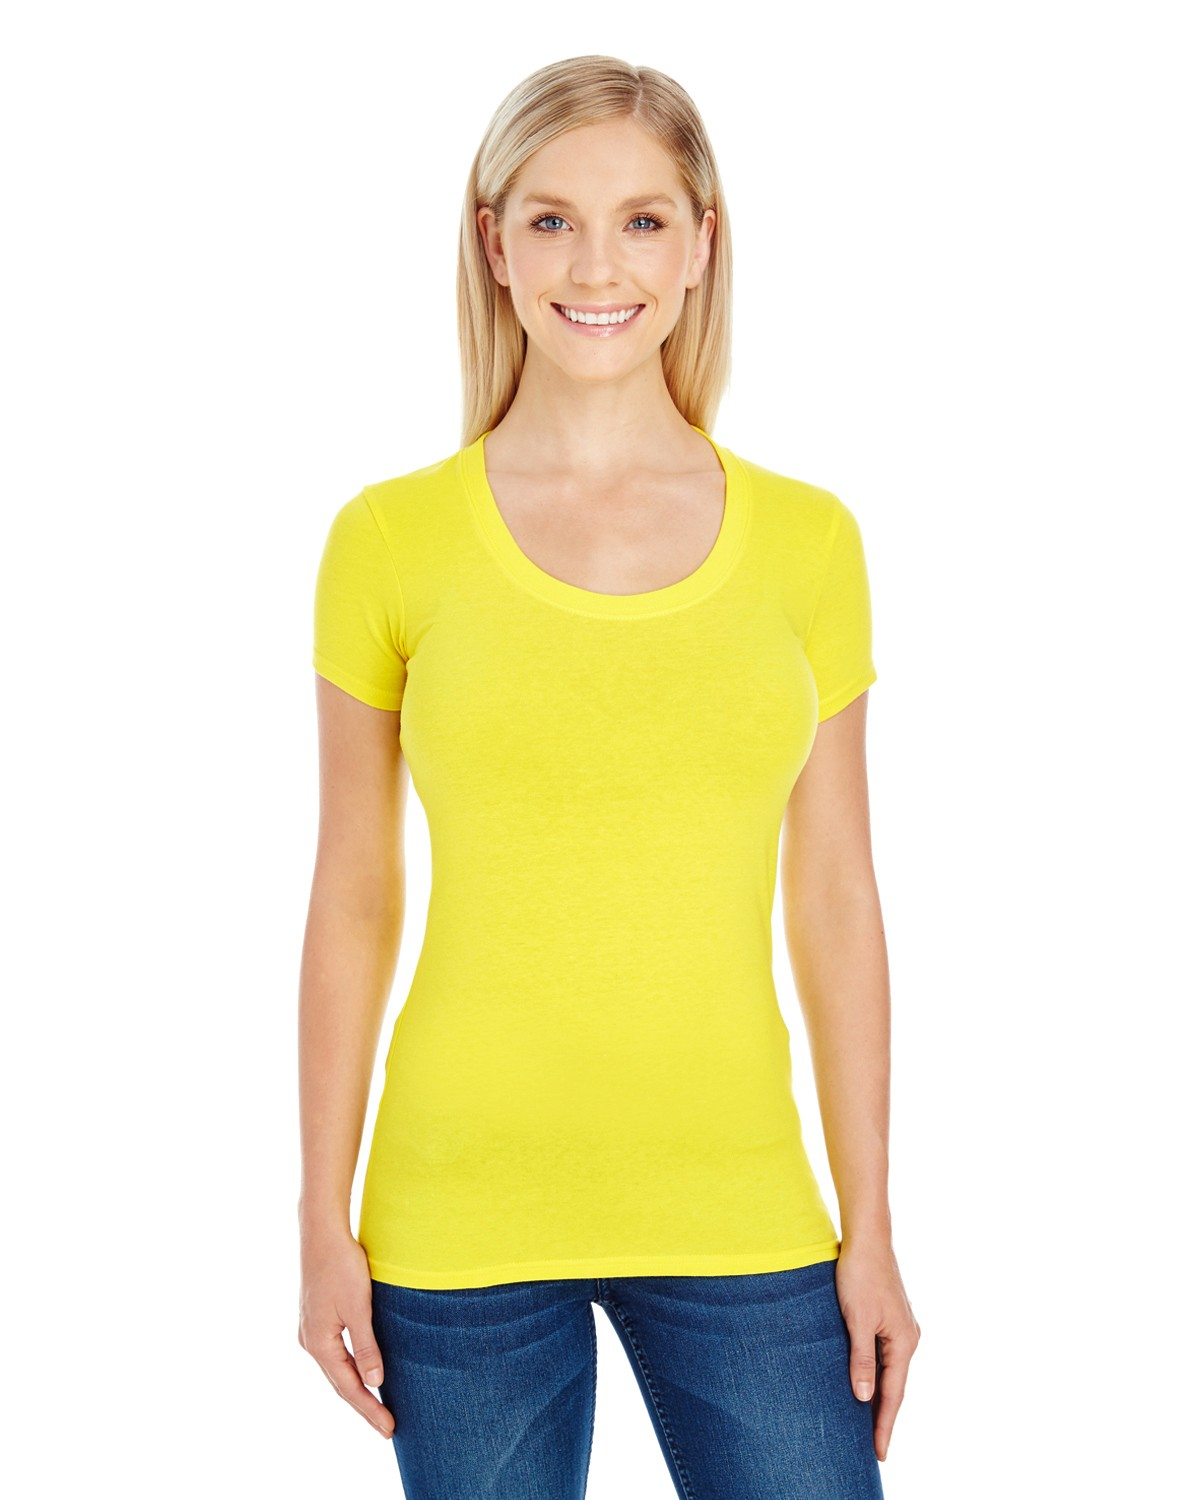 220S Threadfast Apparel ACTIVE YELLOW